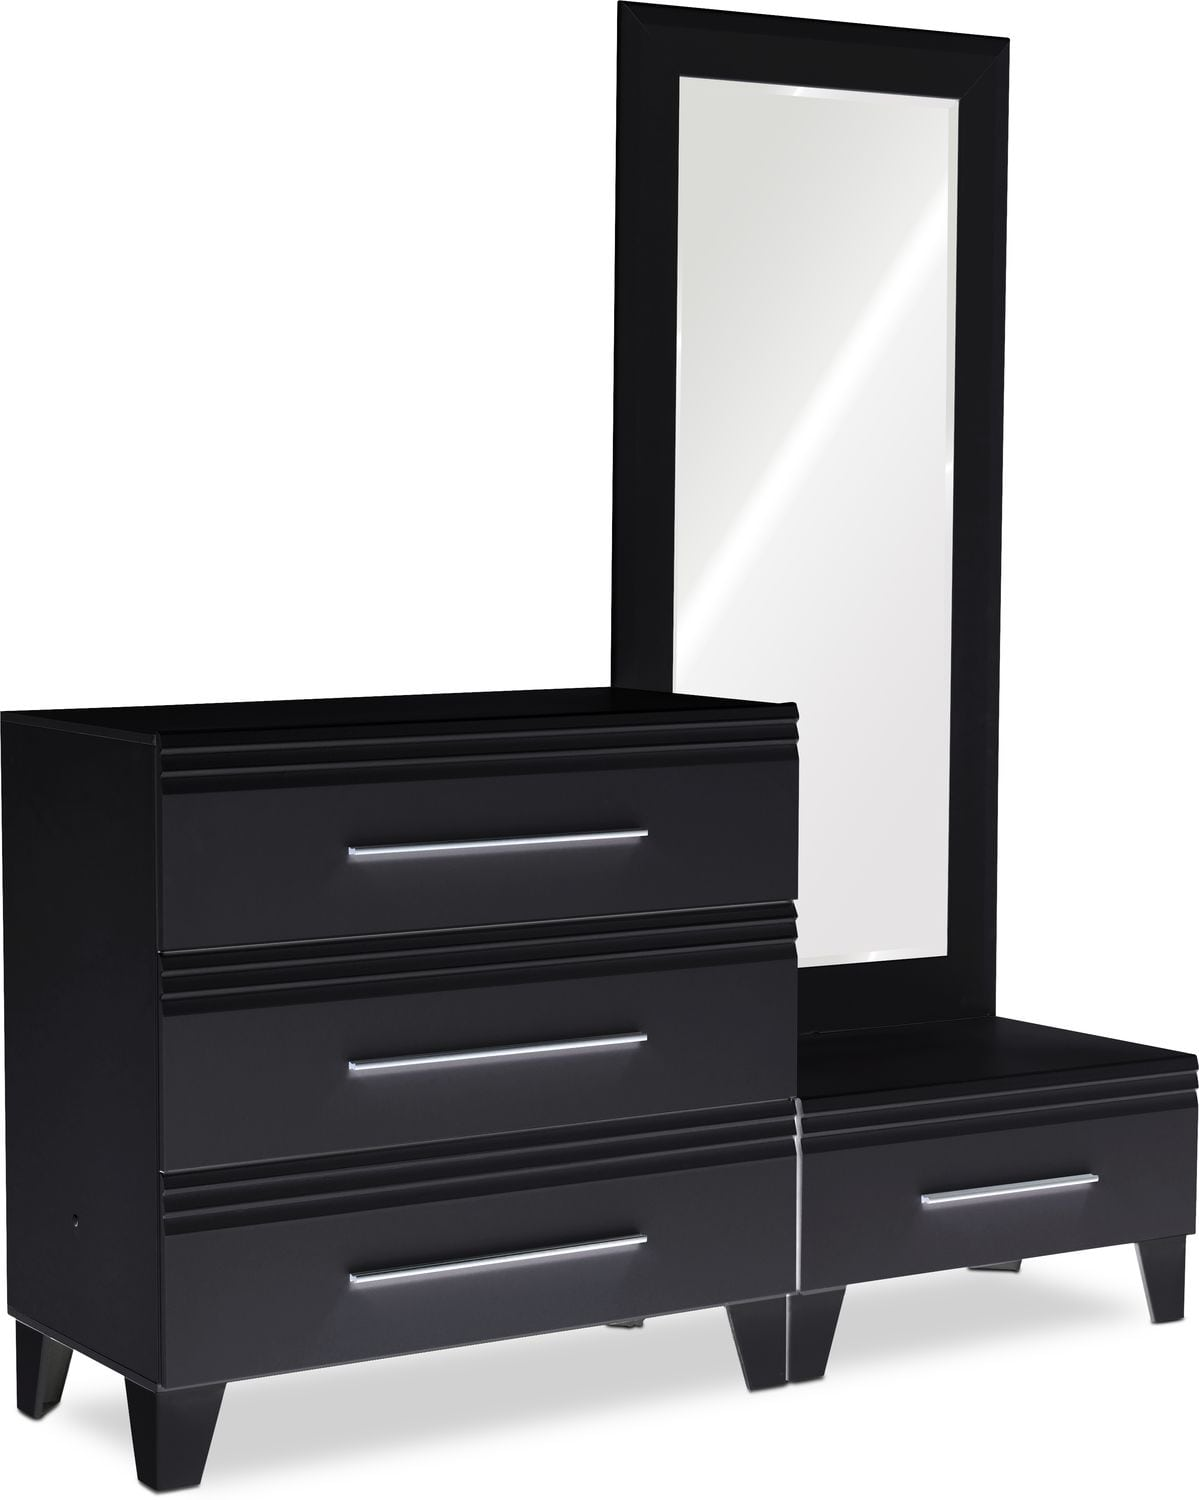 Bedroom Furniture - Allori Chest and Dressing Mirror